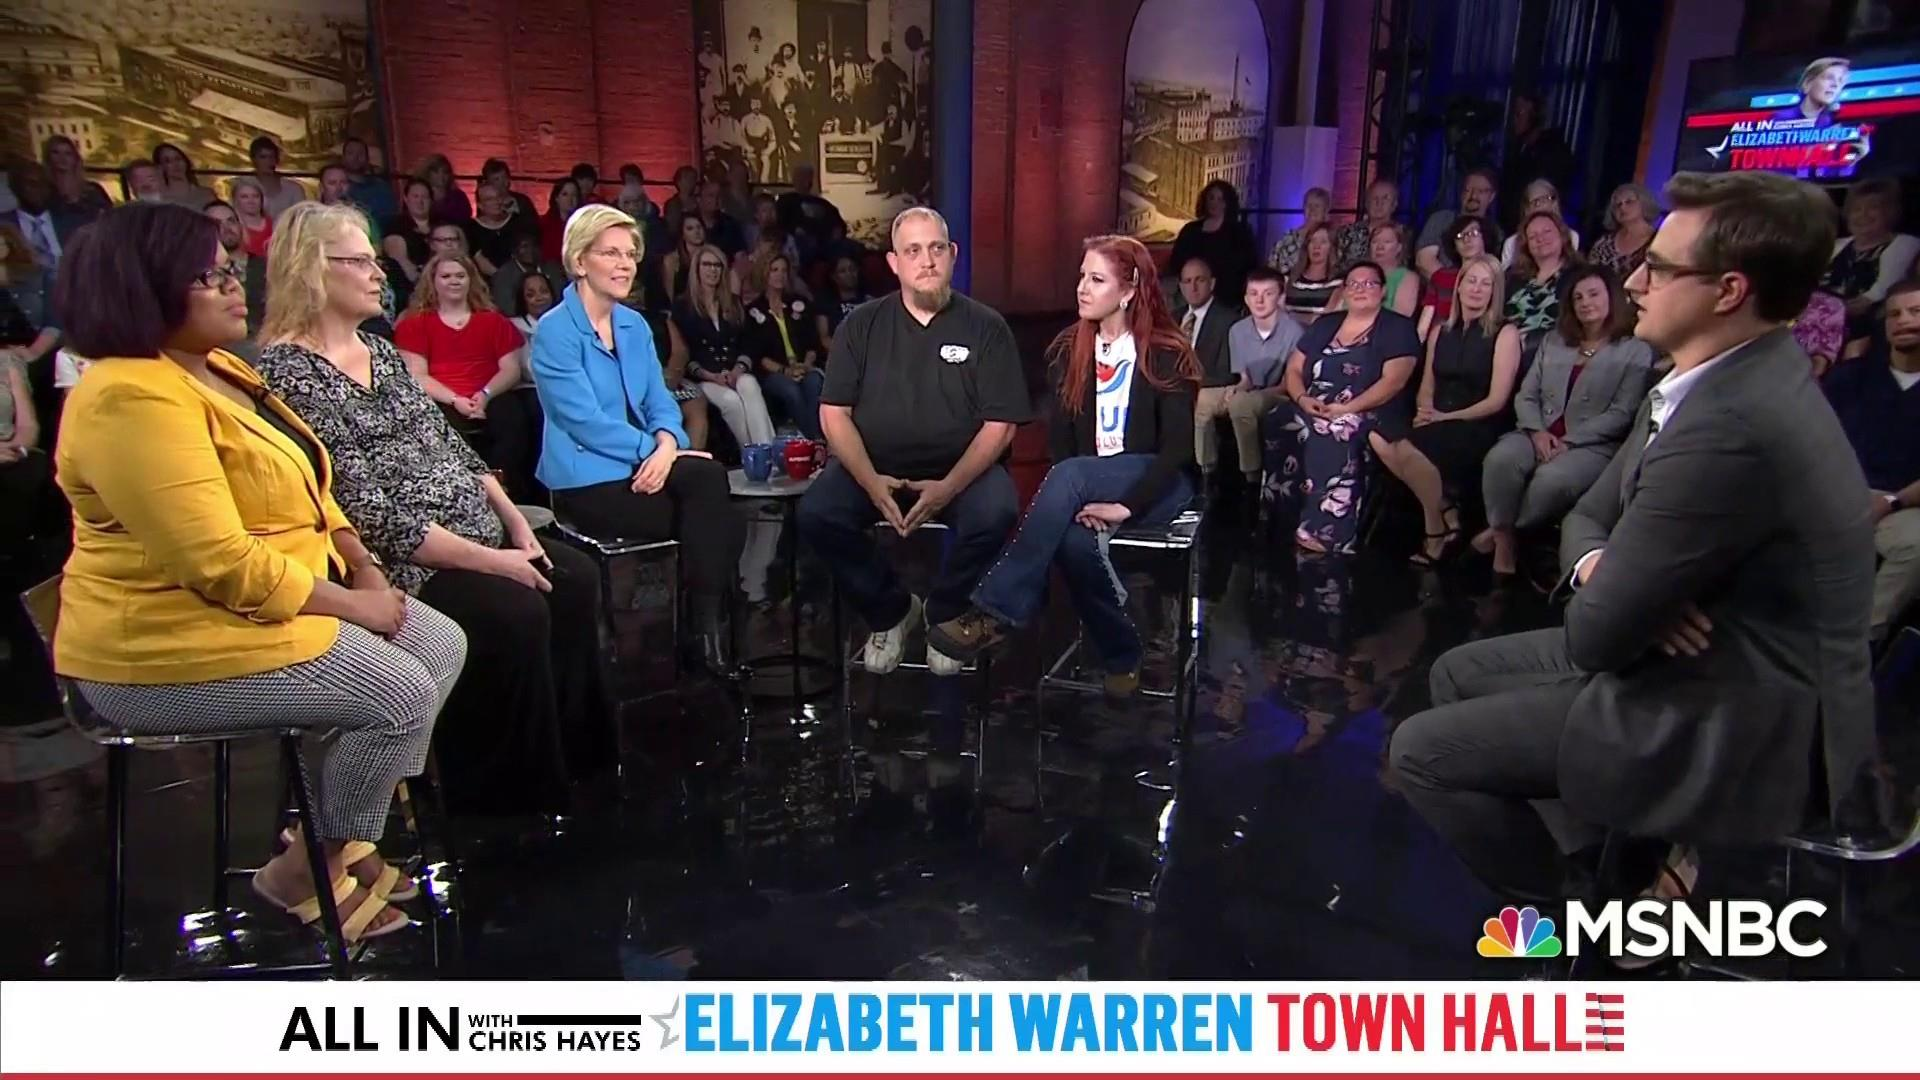 FLASHBACK: Prof. Elizabeth Warren faces off against Sen. Joe Biden